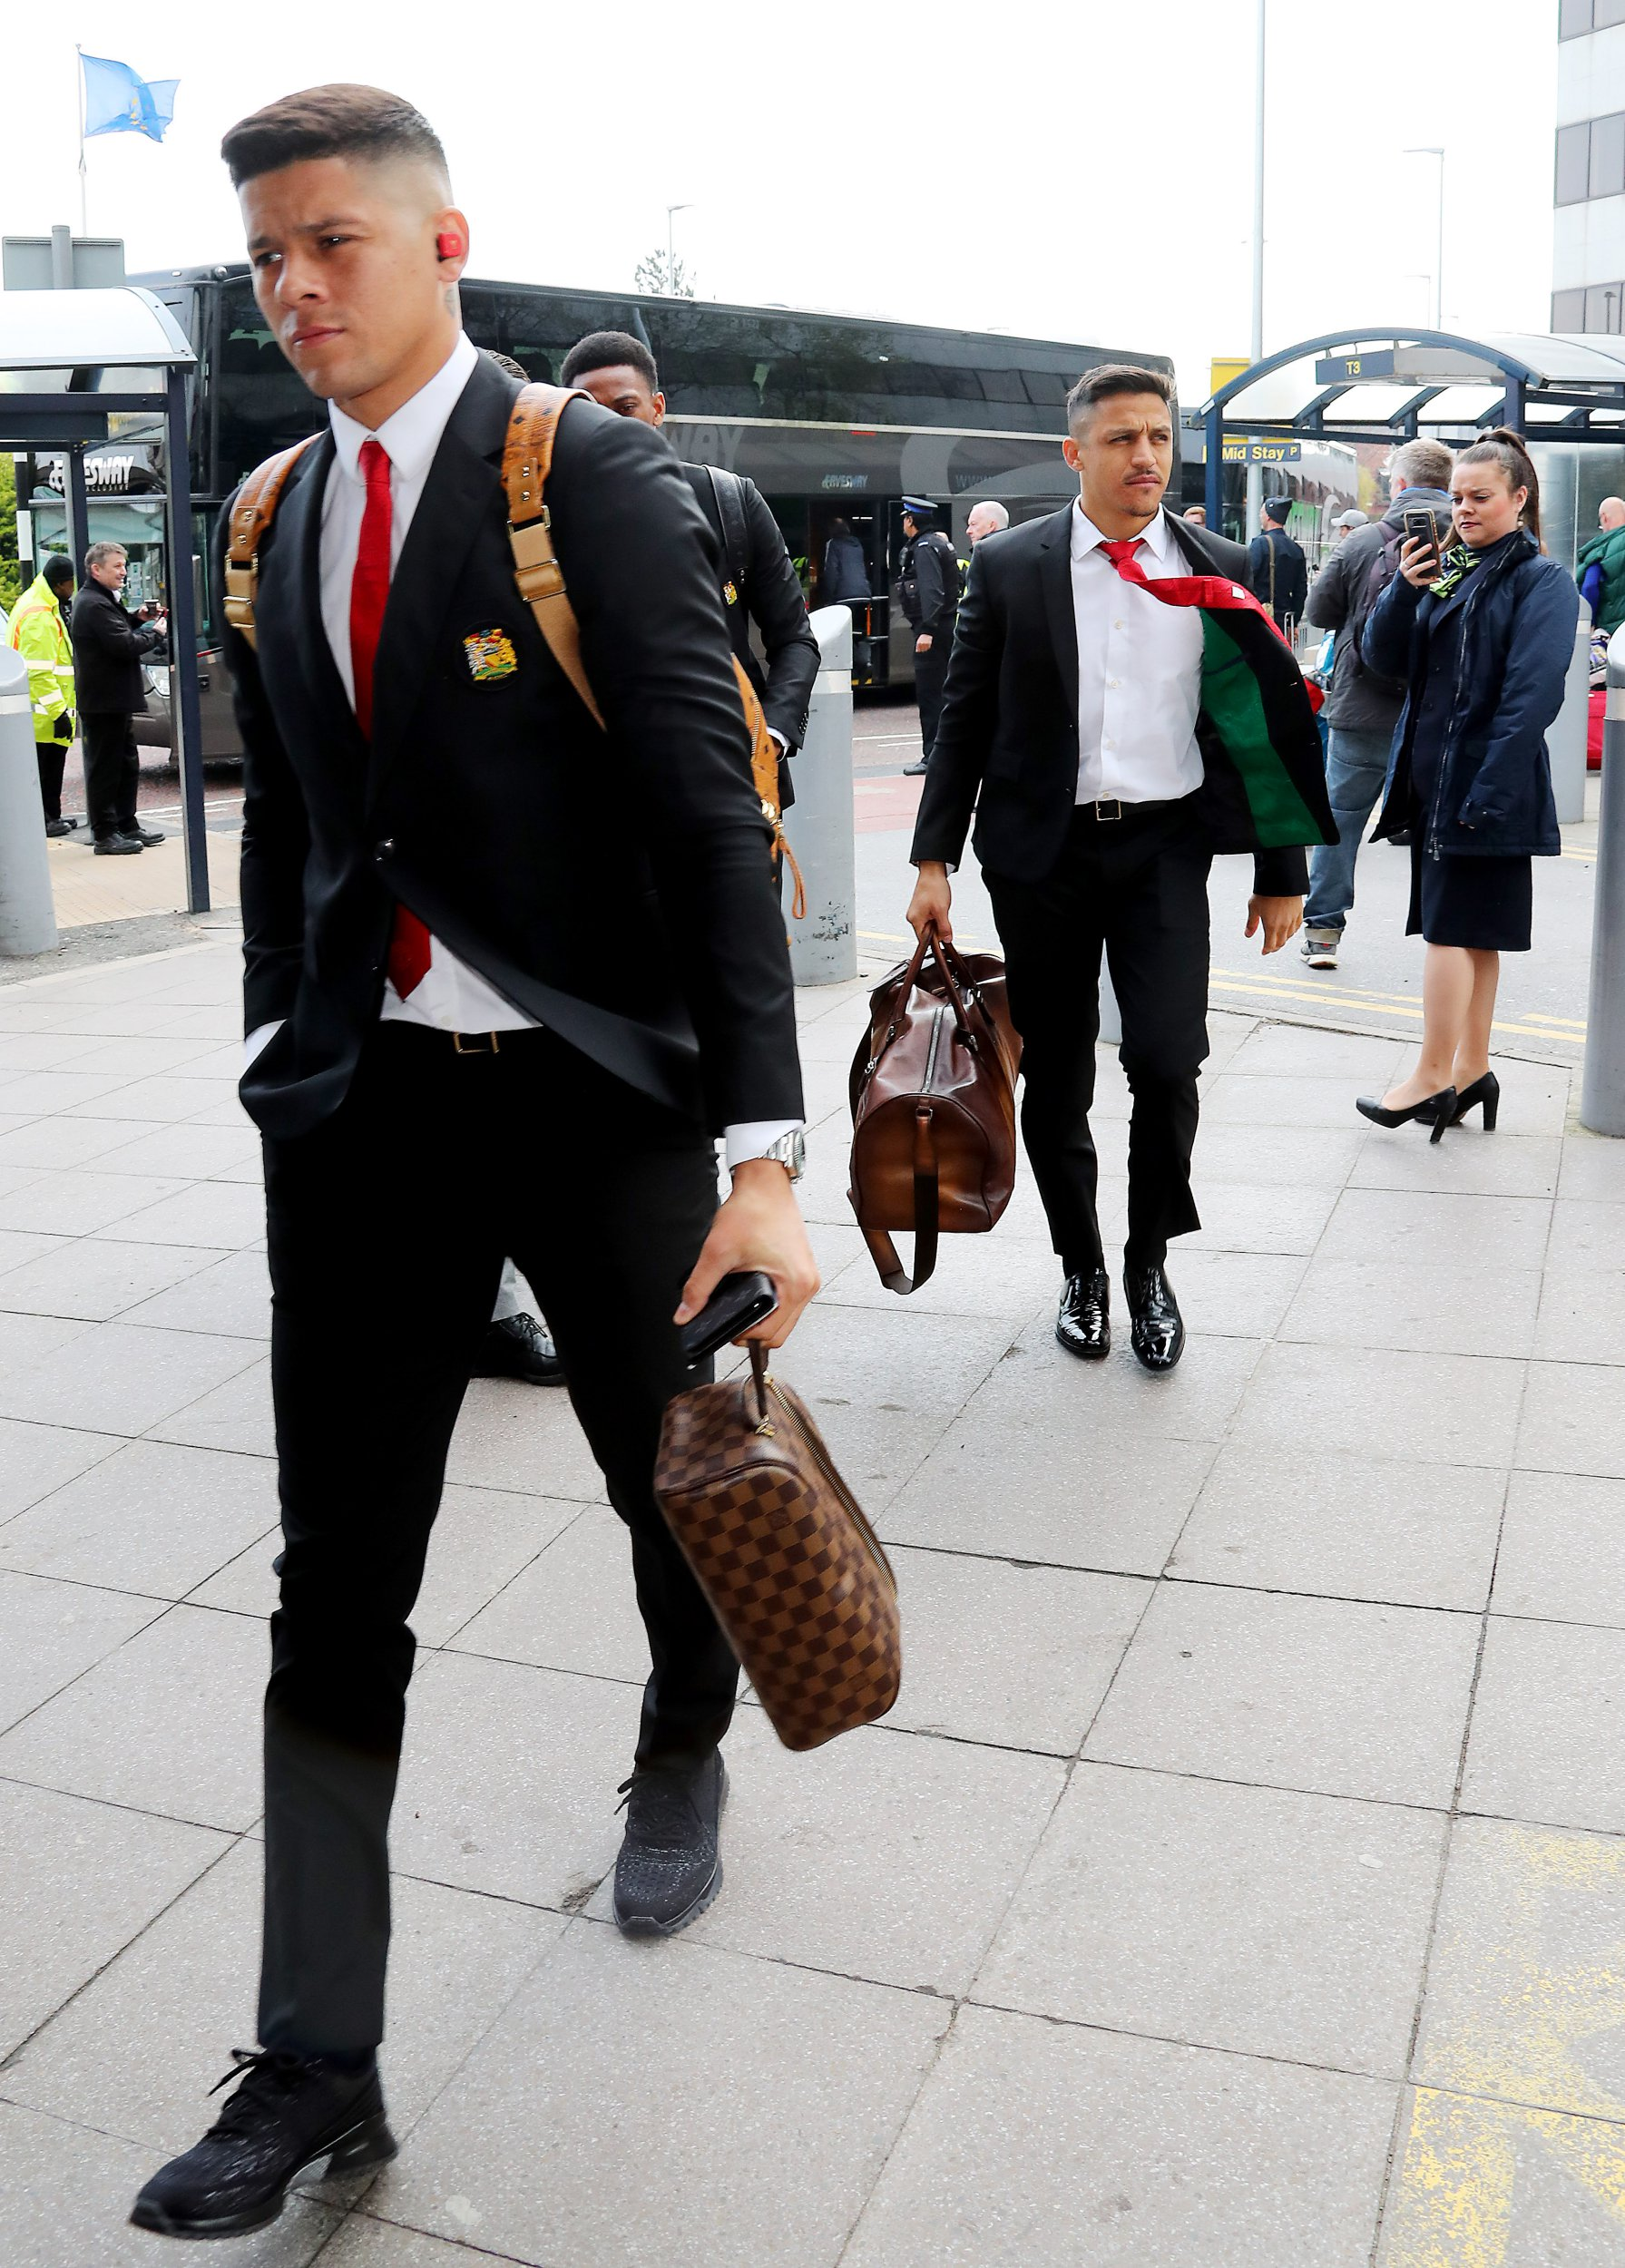 15.4.19???.The Manchester United team fly to Barcelona on Monday morning for their Champions League 2nd leg on Tuesday night??????. Marcos Rojo and Alexis Sanchez.